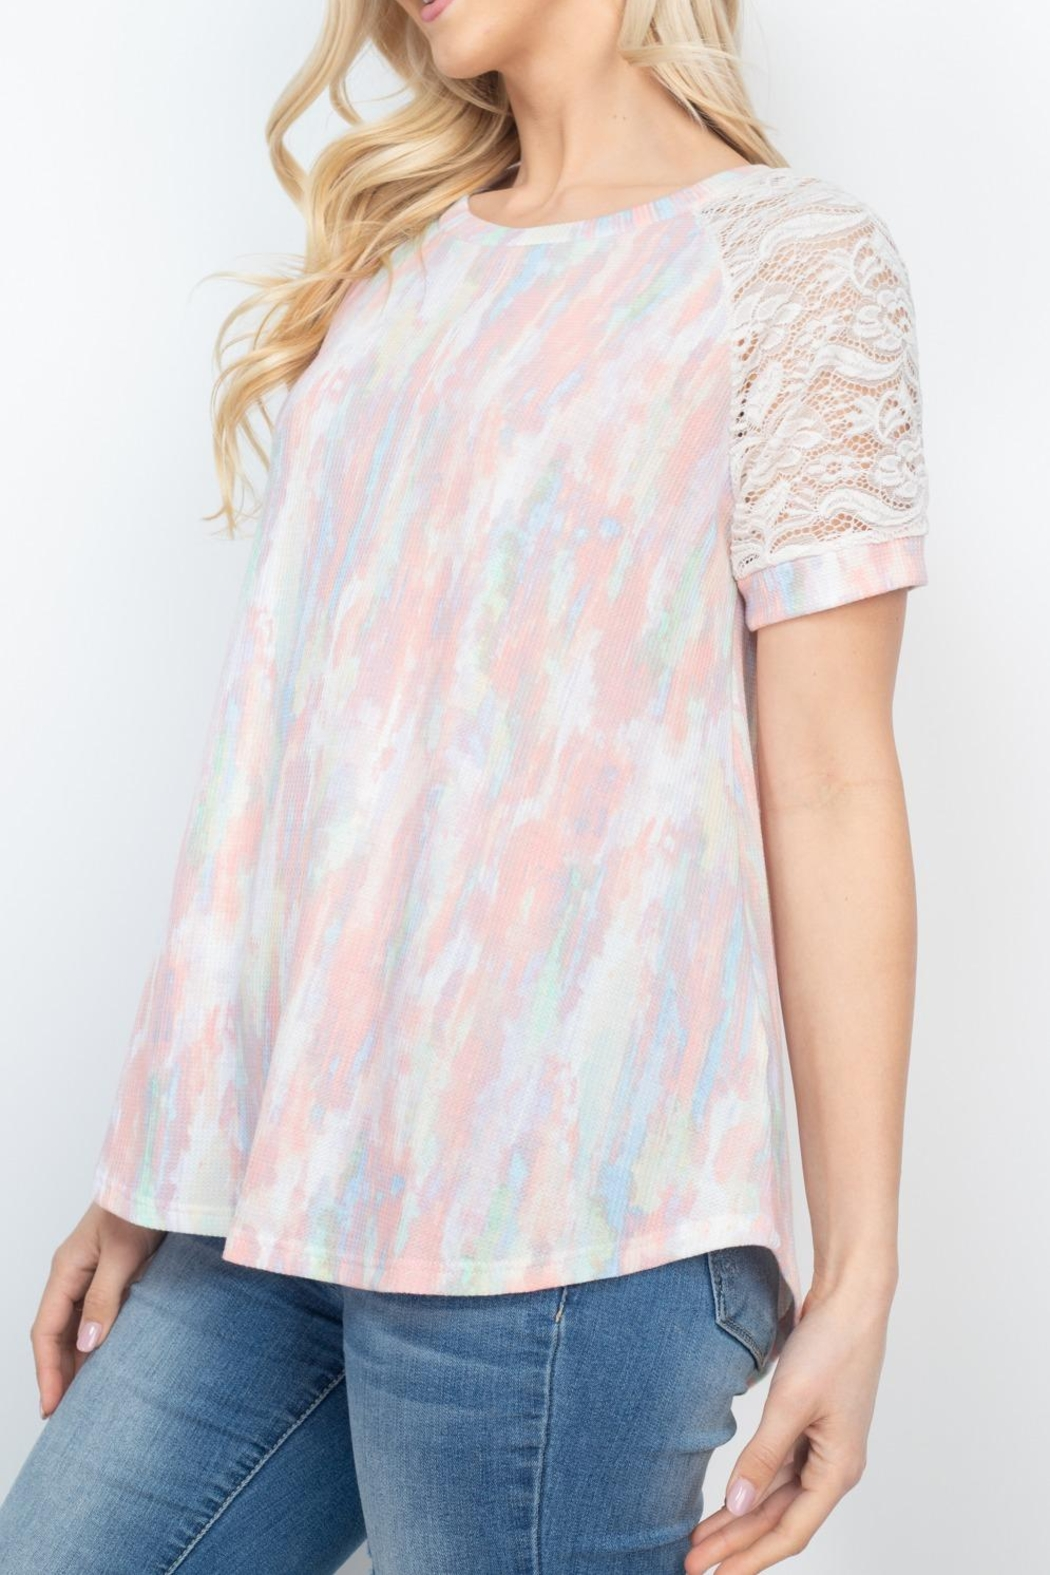 Riah Fashion Lace-Sleeve-Thermal-Tie-Dye-Top - Side Cropped Image